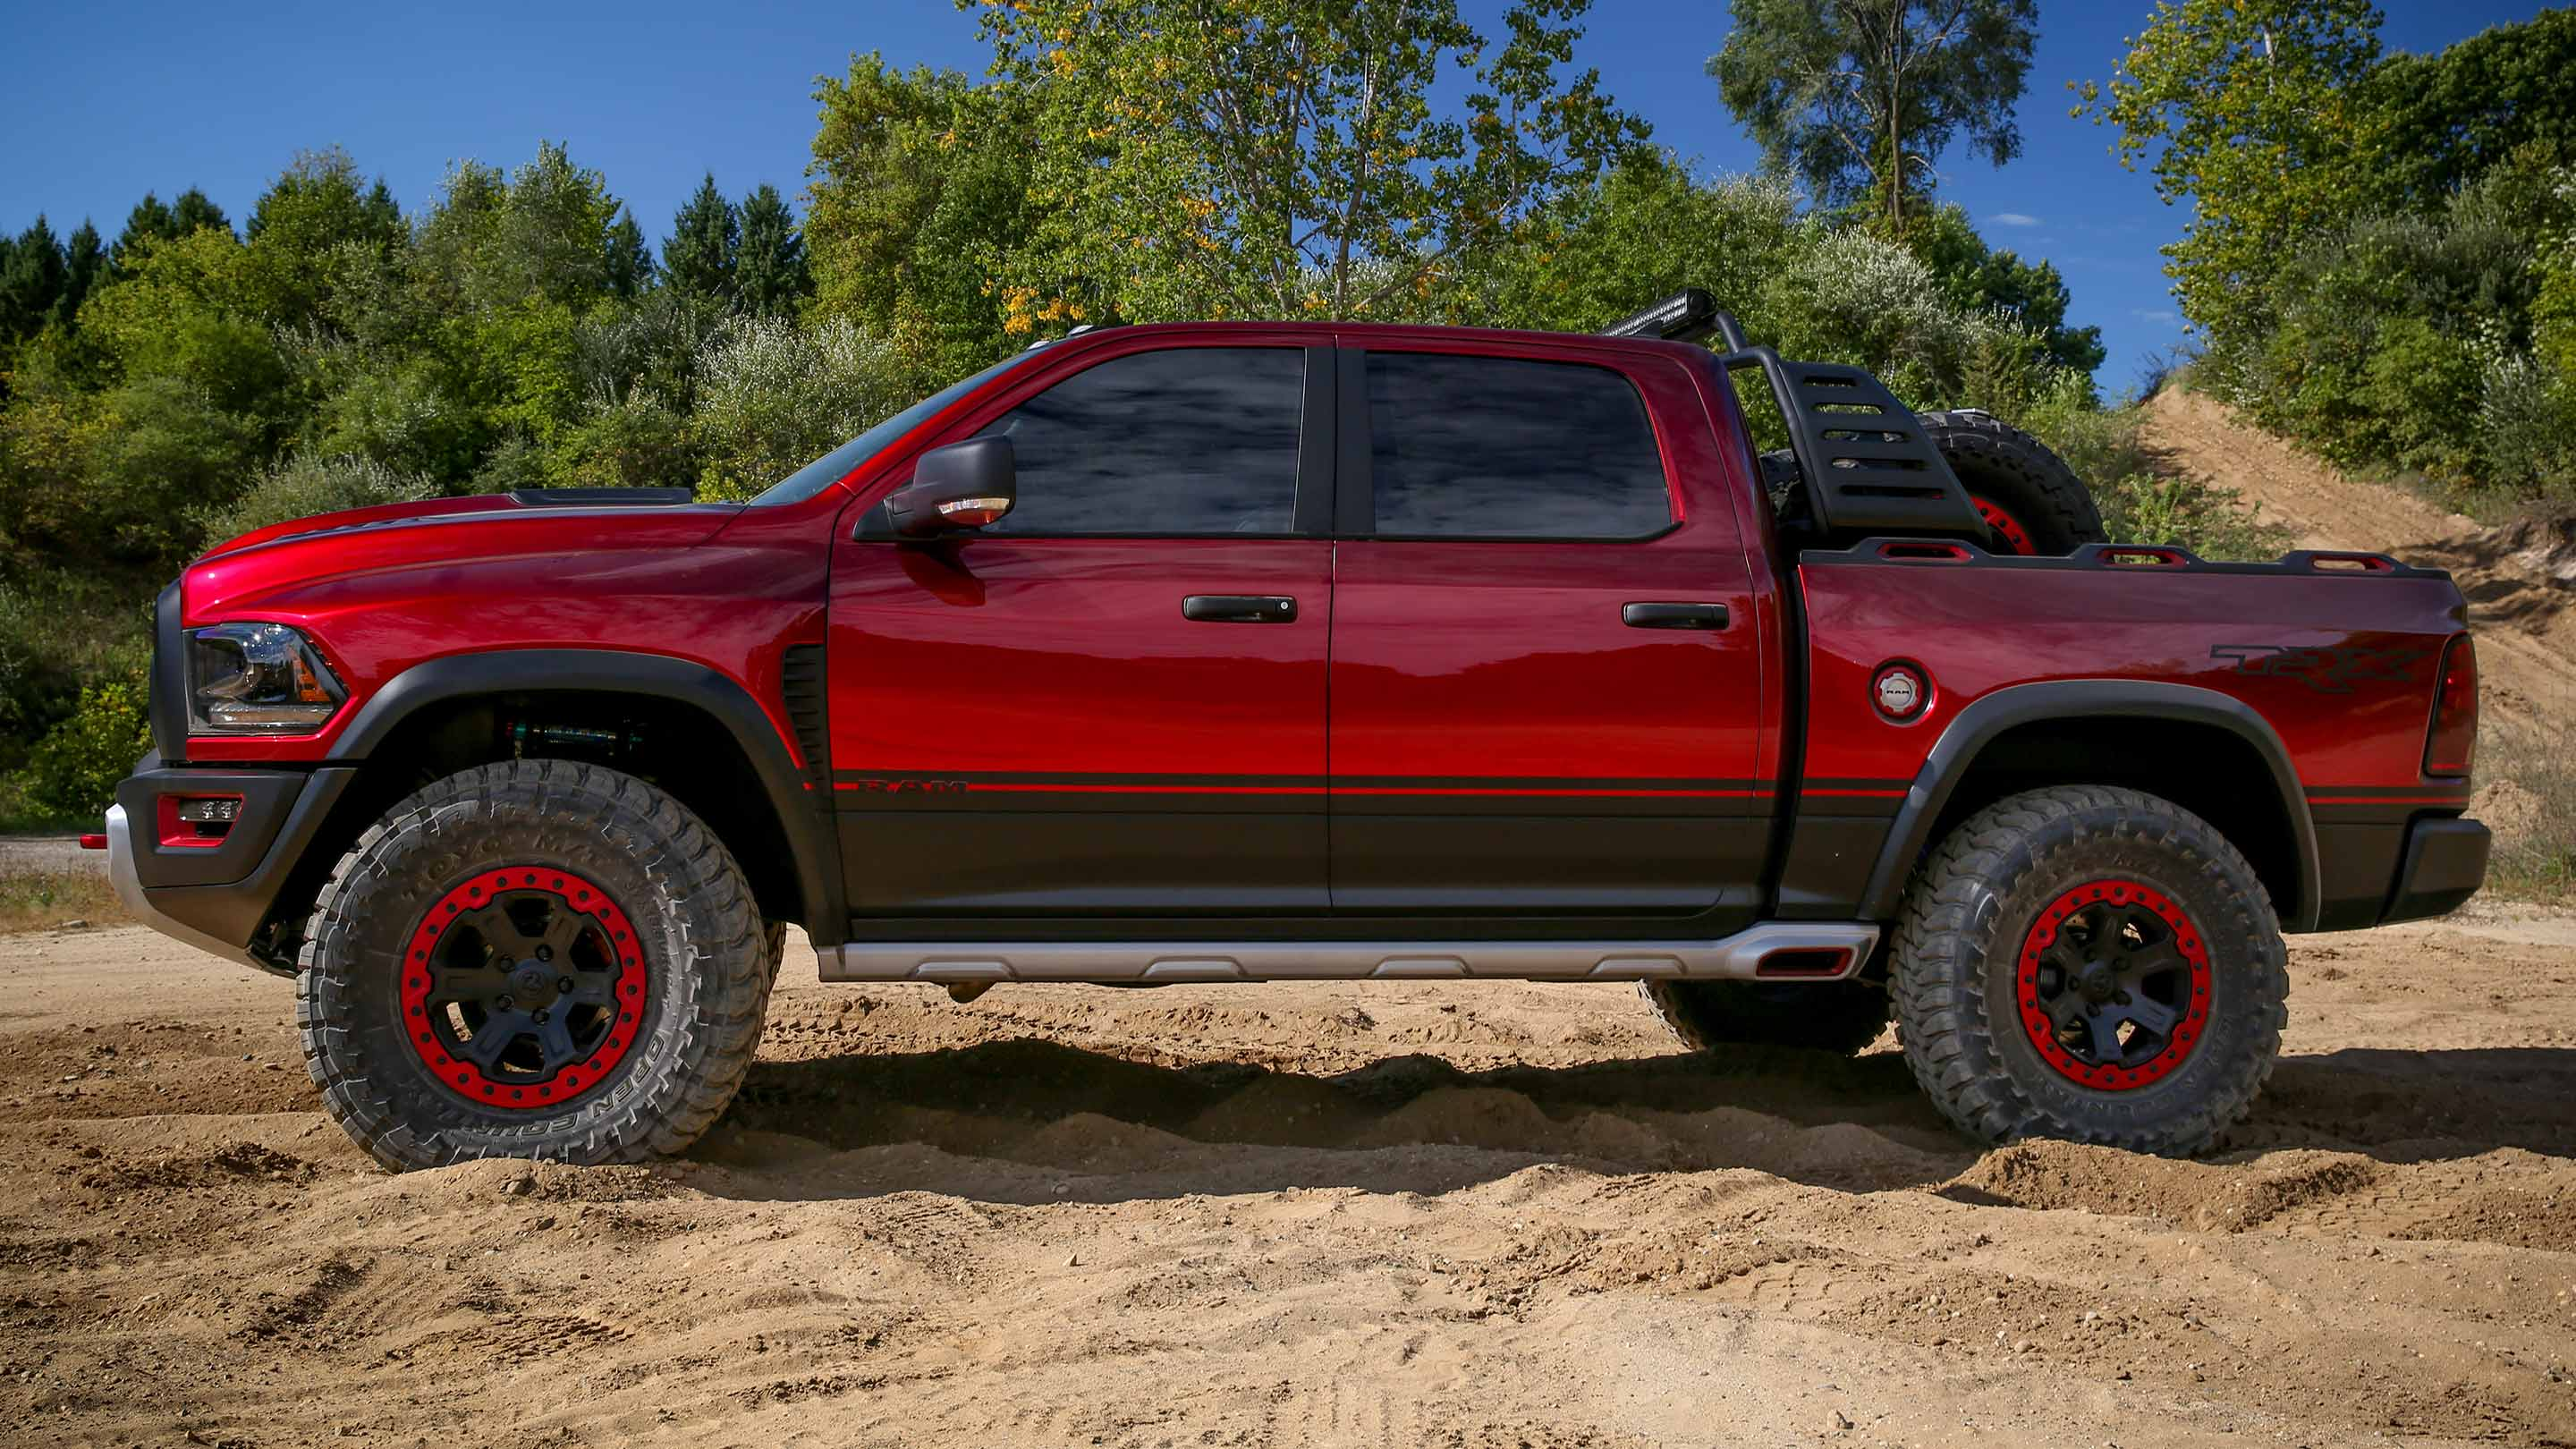 RAM Rebel TRX Concept Photo: ramtrucks